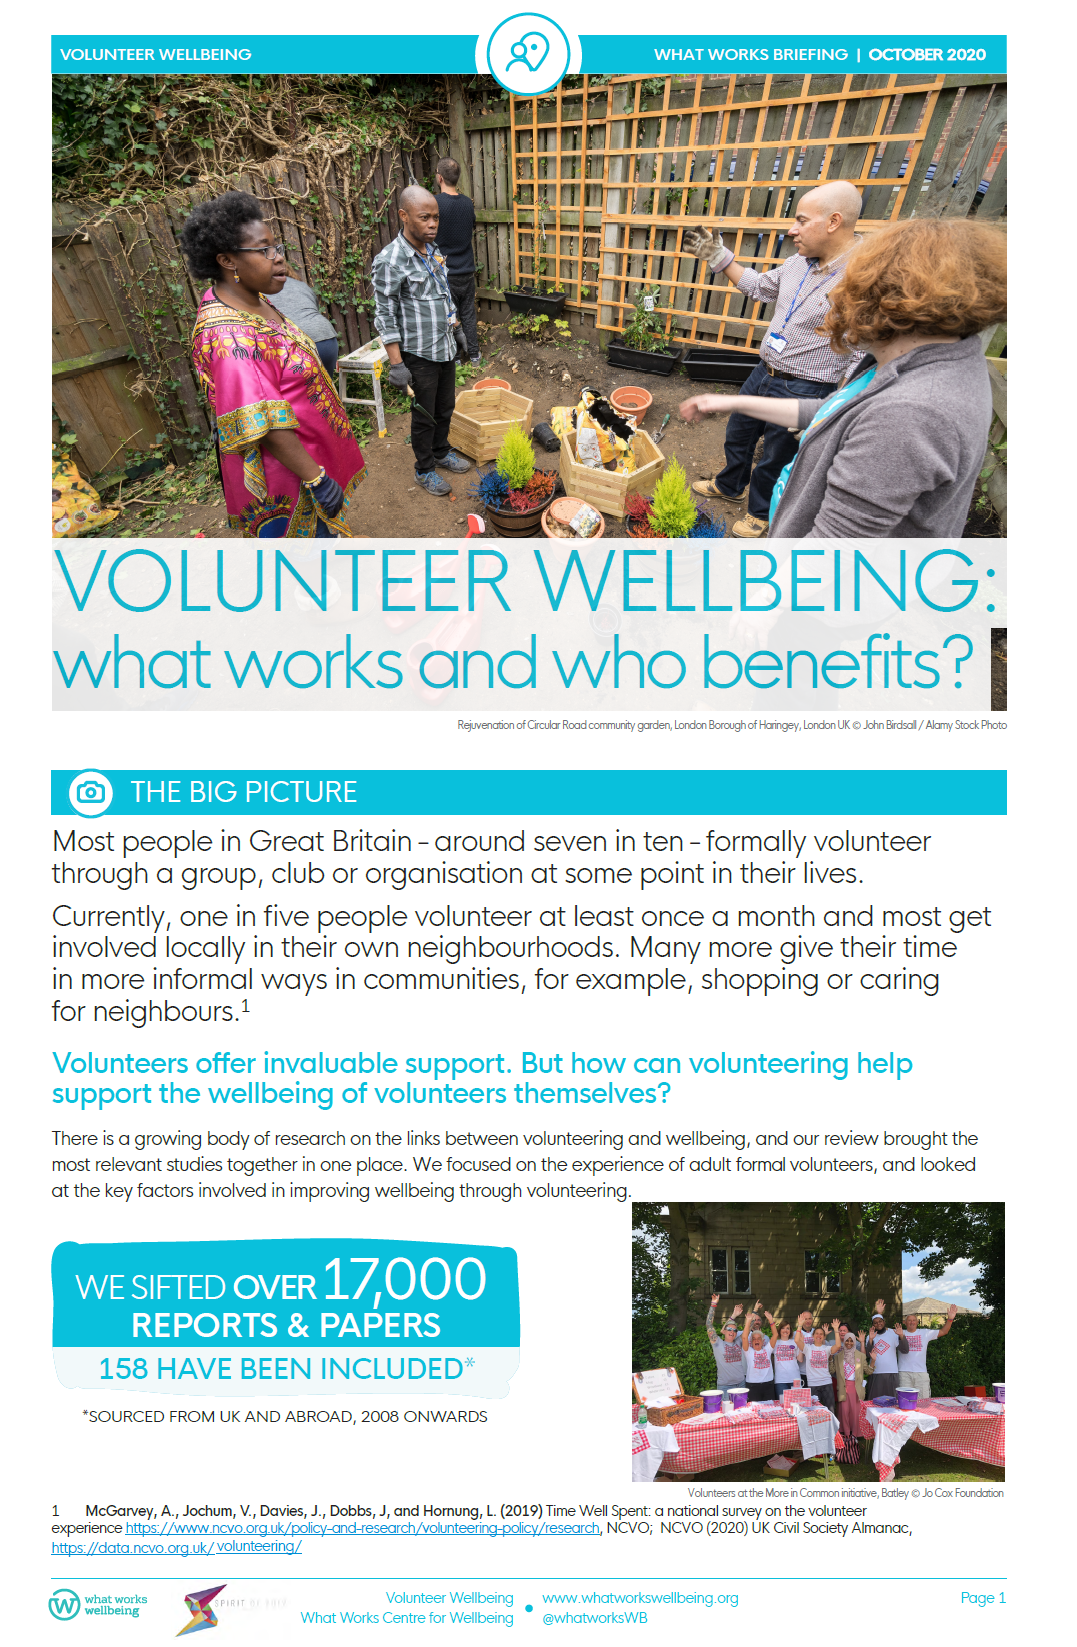 Volunteer wellbeing: what works and who benefits?